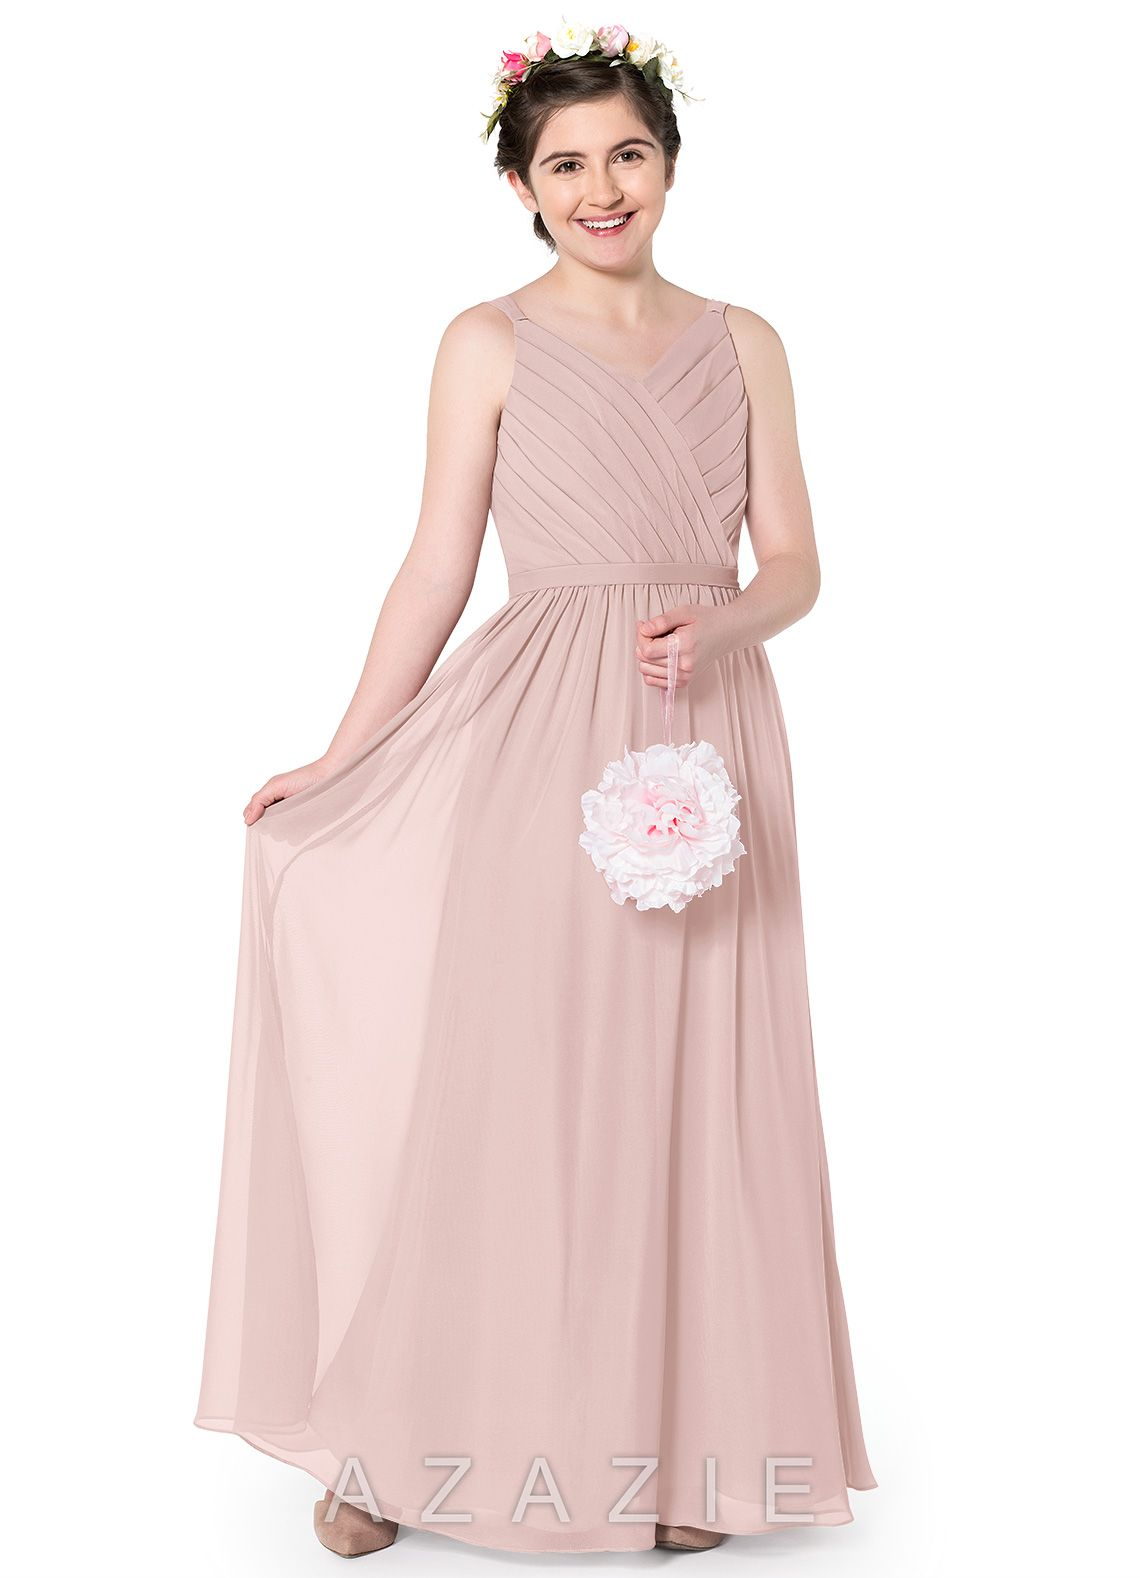 Azazie Leanna JBD Junior Bridesmaid Dress